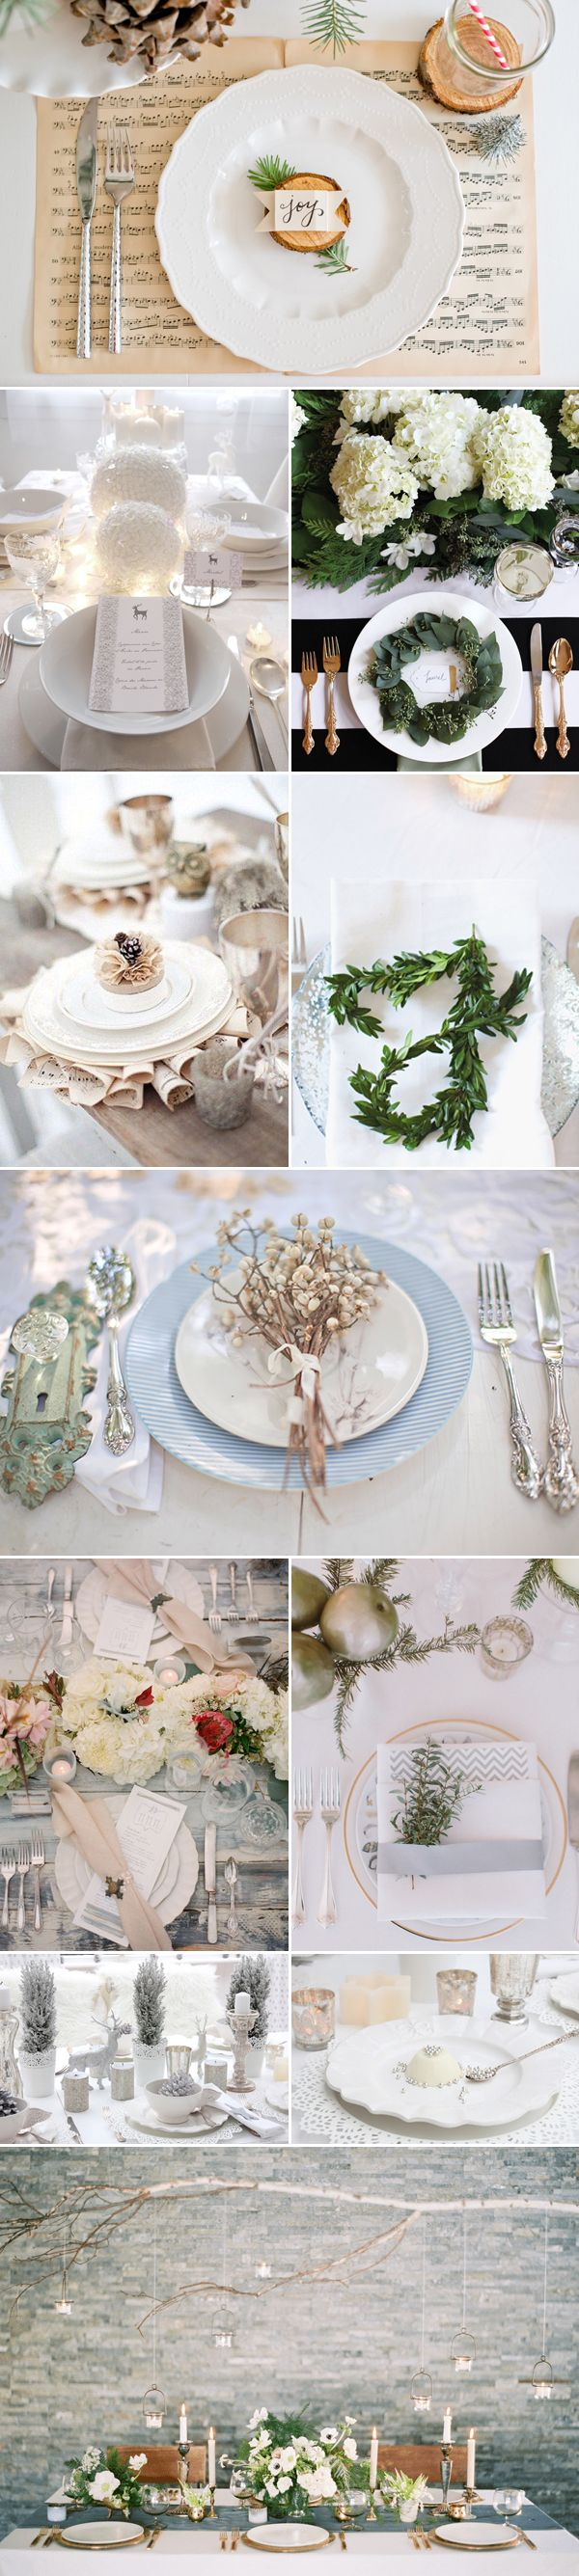 20 Winter Wedding Place Setting Ideas